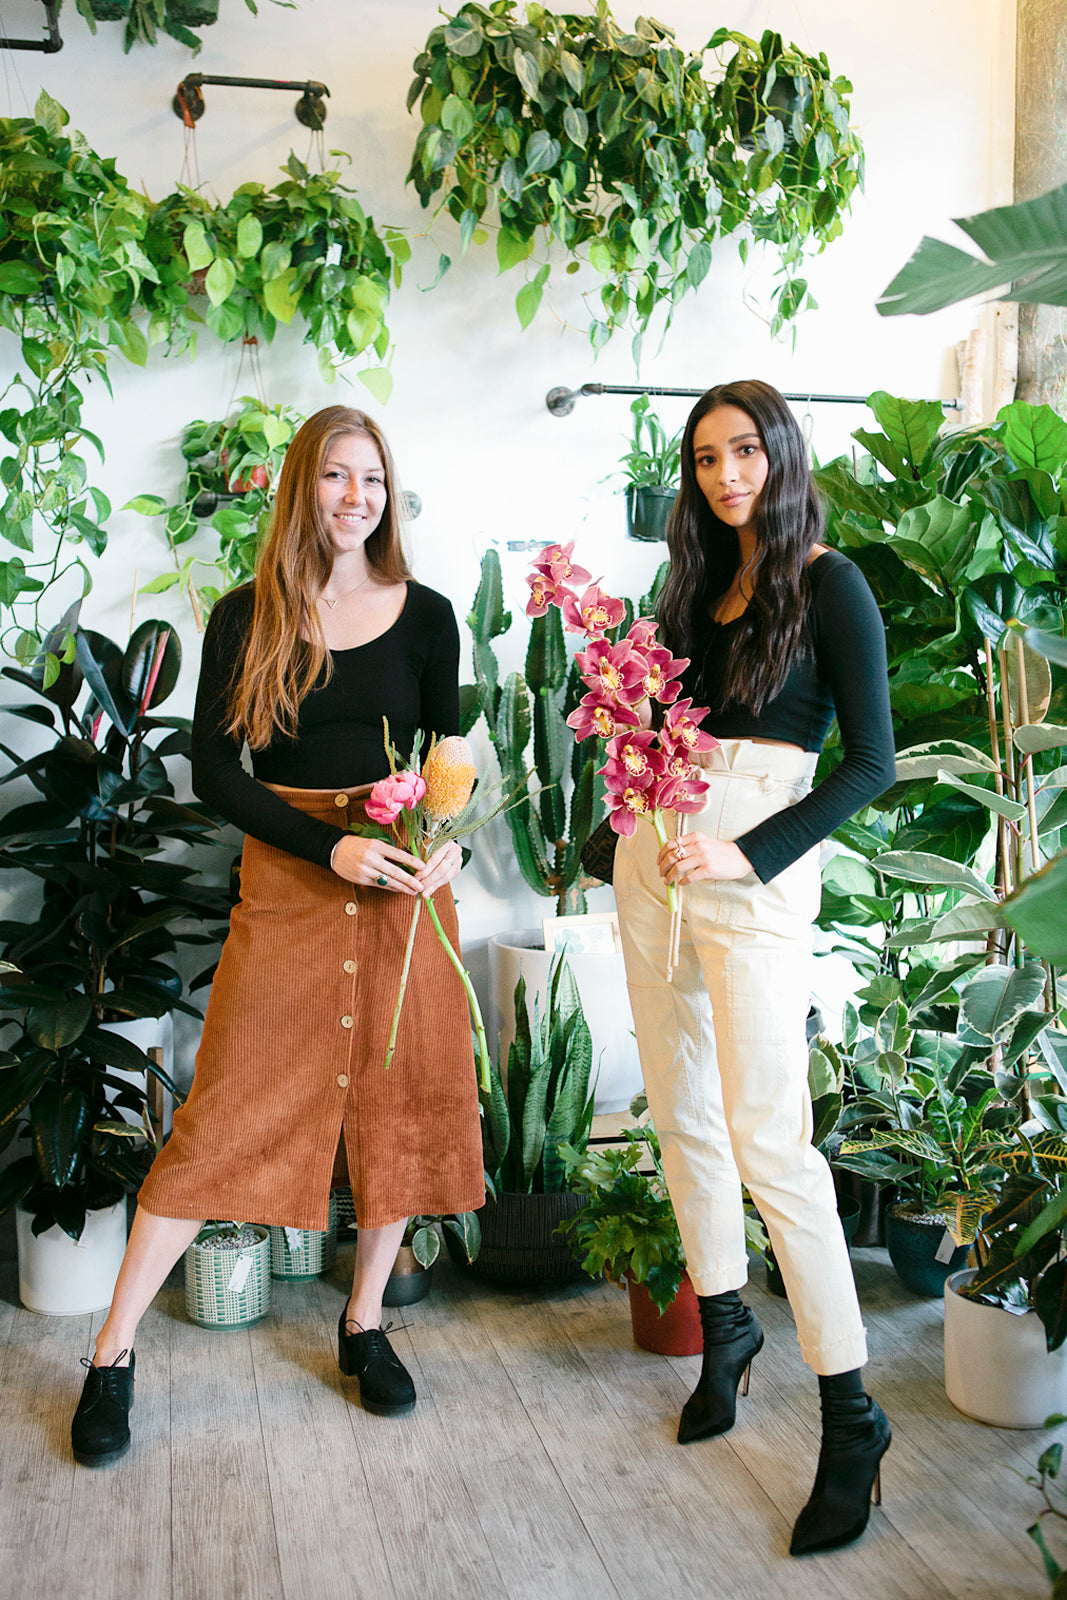 Alexandra Scholtz (left), owner of WildFlora, and Shay Mitchell (right), pose with flowers in front of a plant-filled wall.